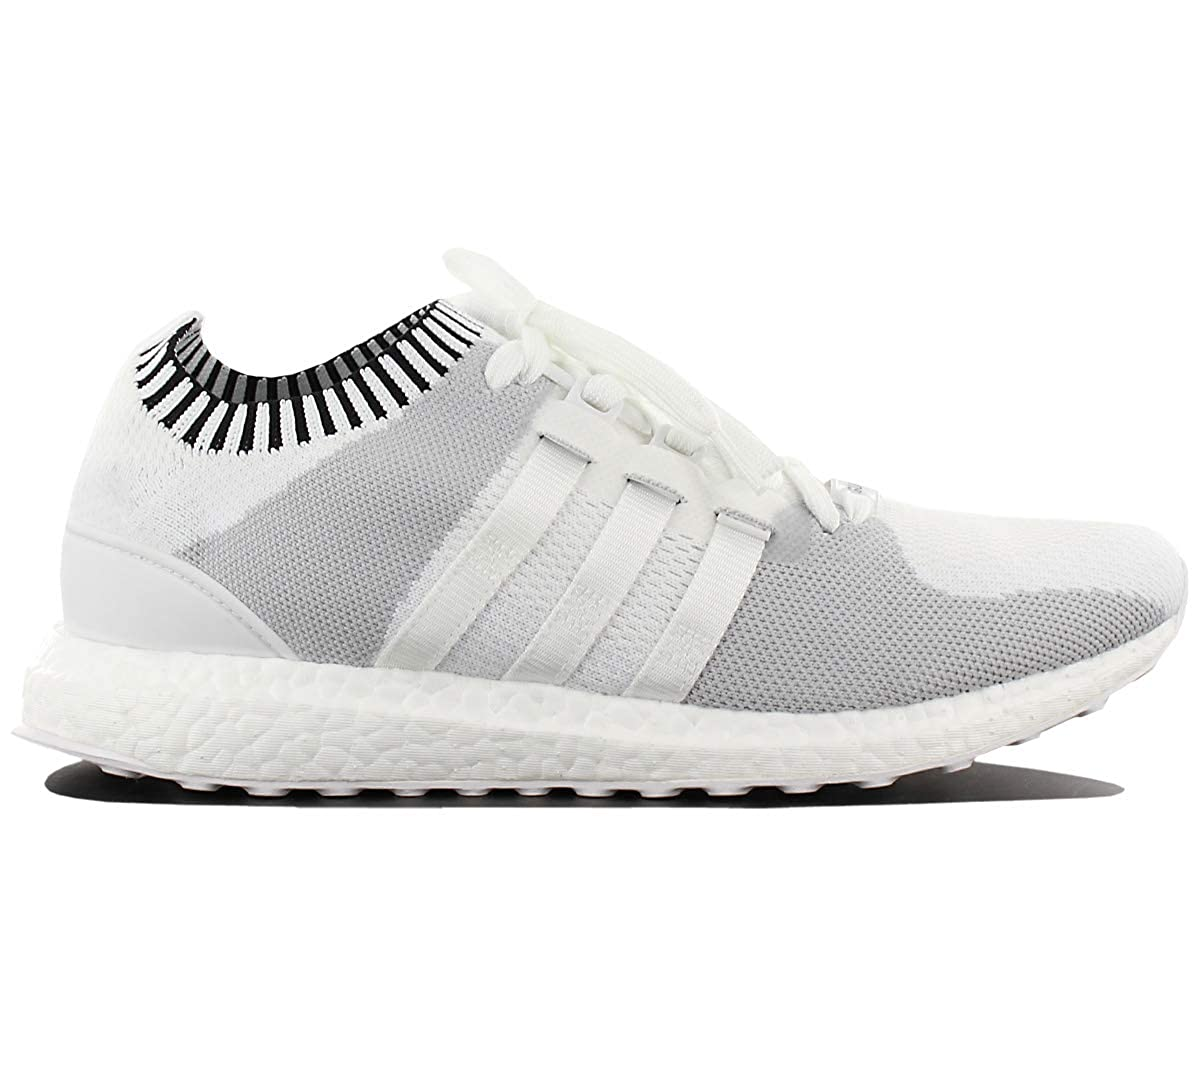 reputable site 681fa 5e0bb adidas Unisex Adults' EQT Support Ultra Pk 243 Trainers ...